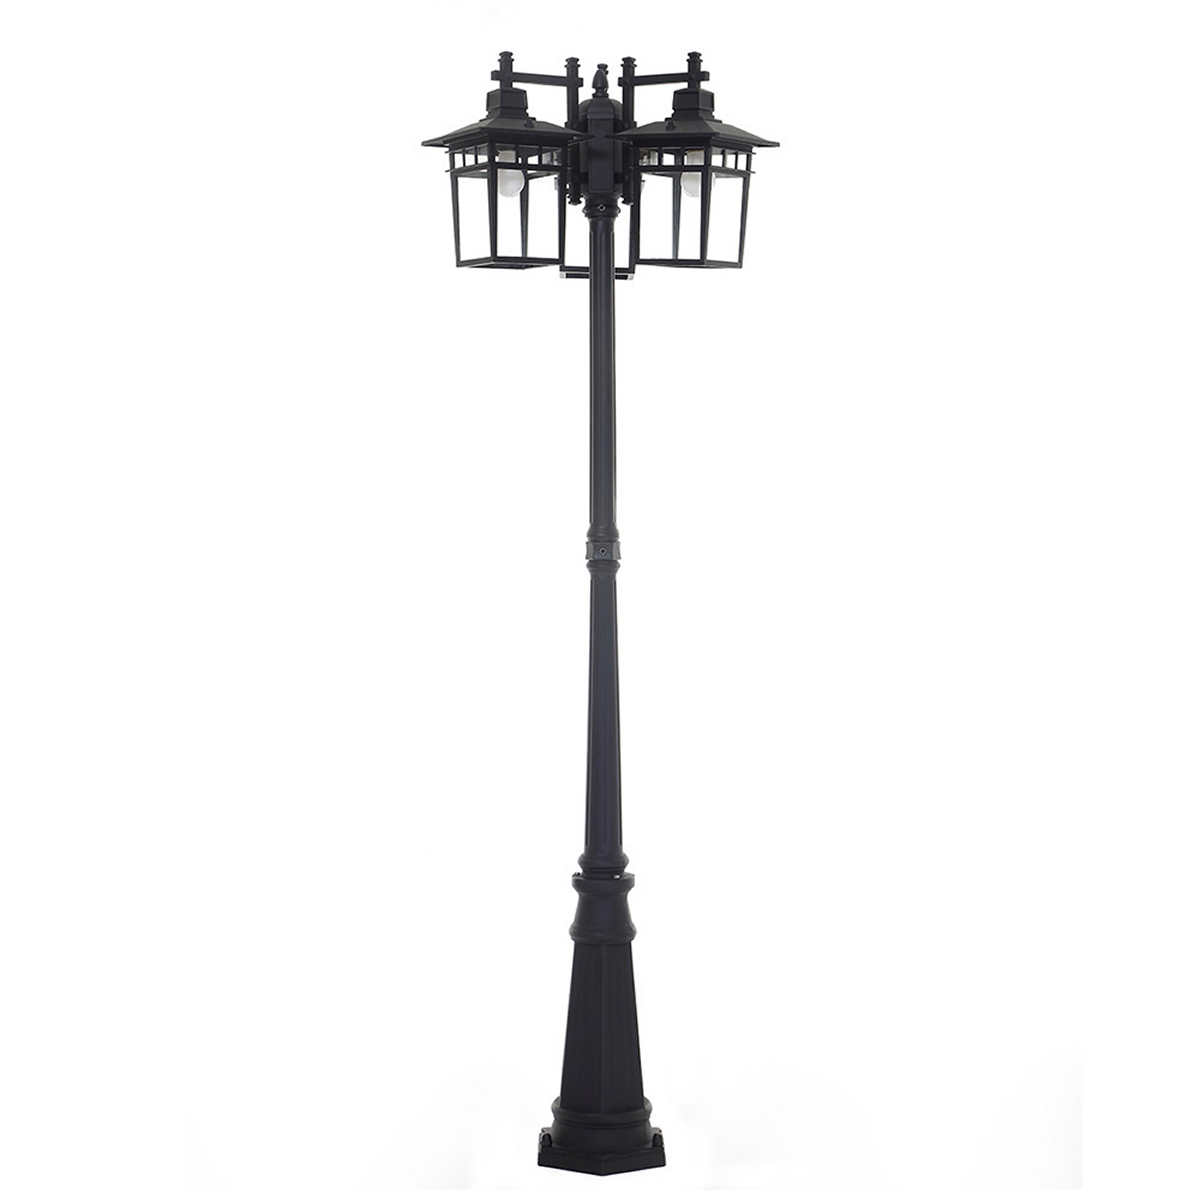 Wood outdoor lamp post - Ove Marco 3 Head Led Lantern Post